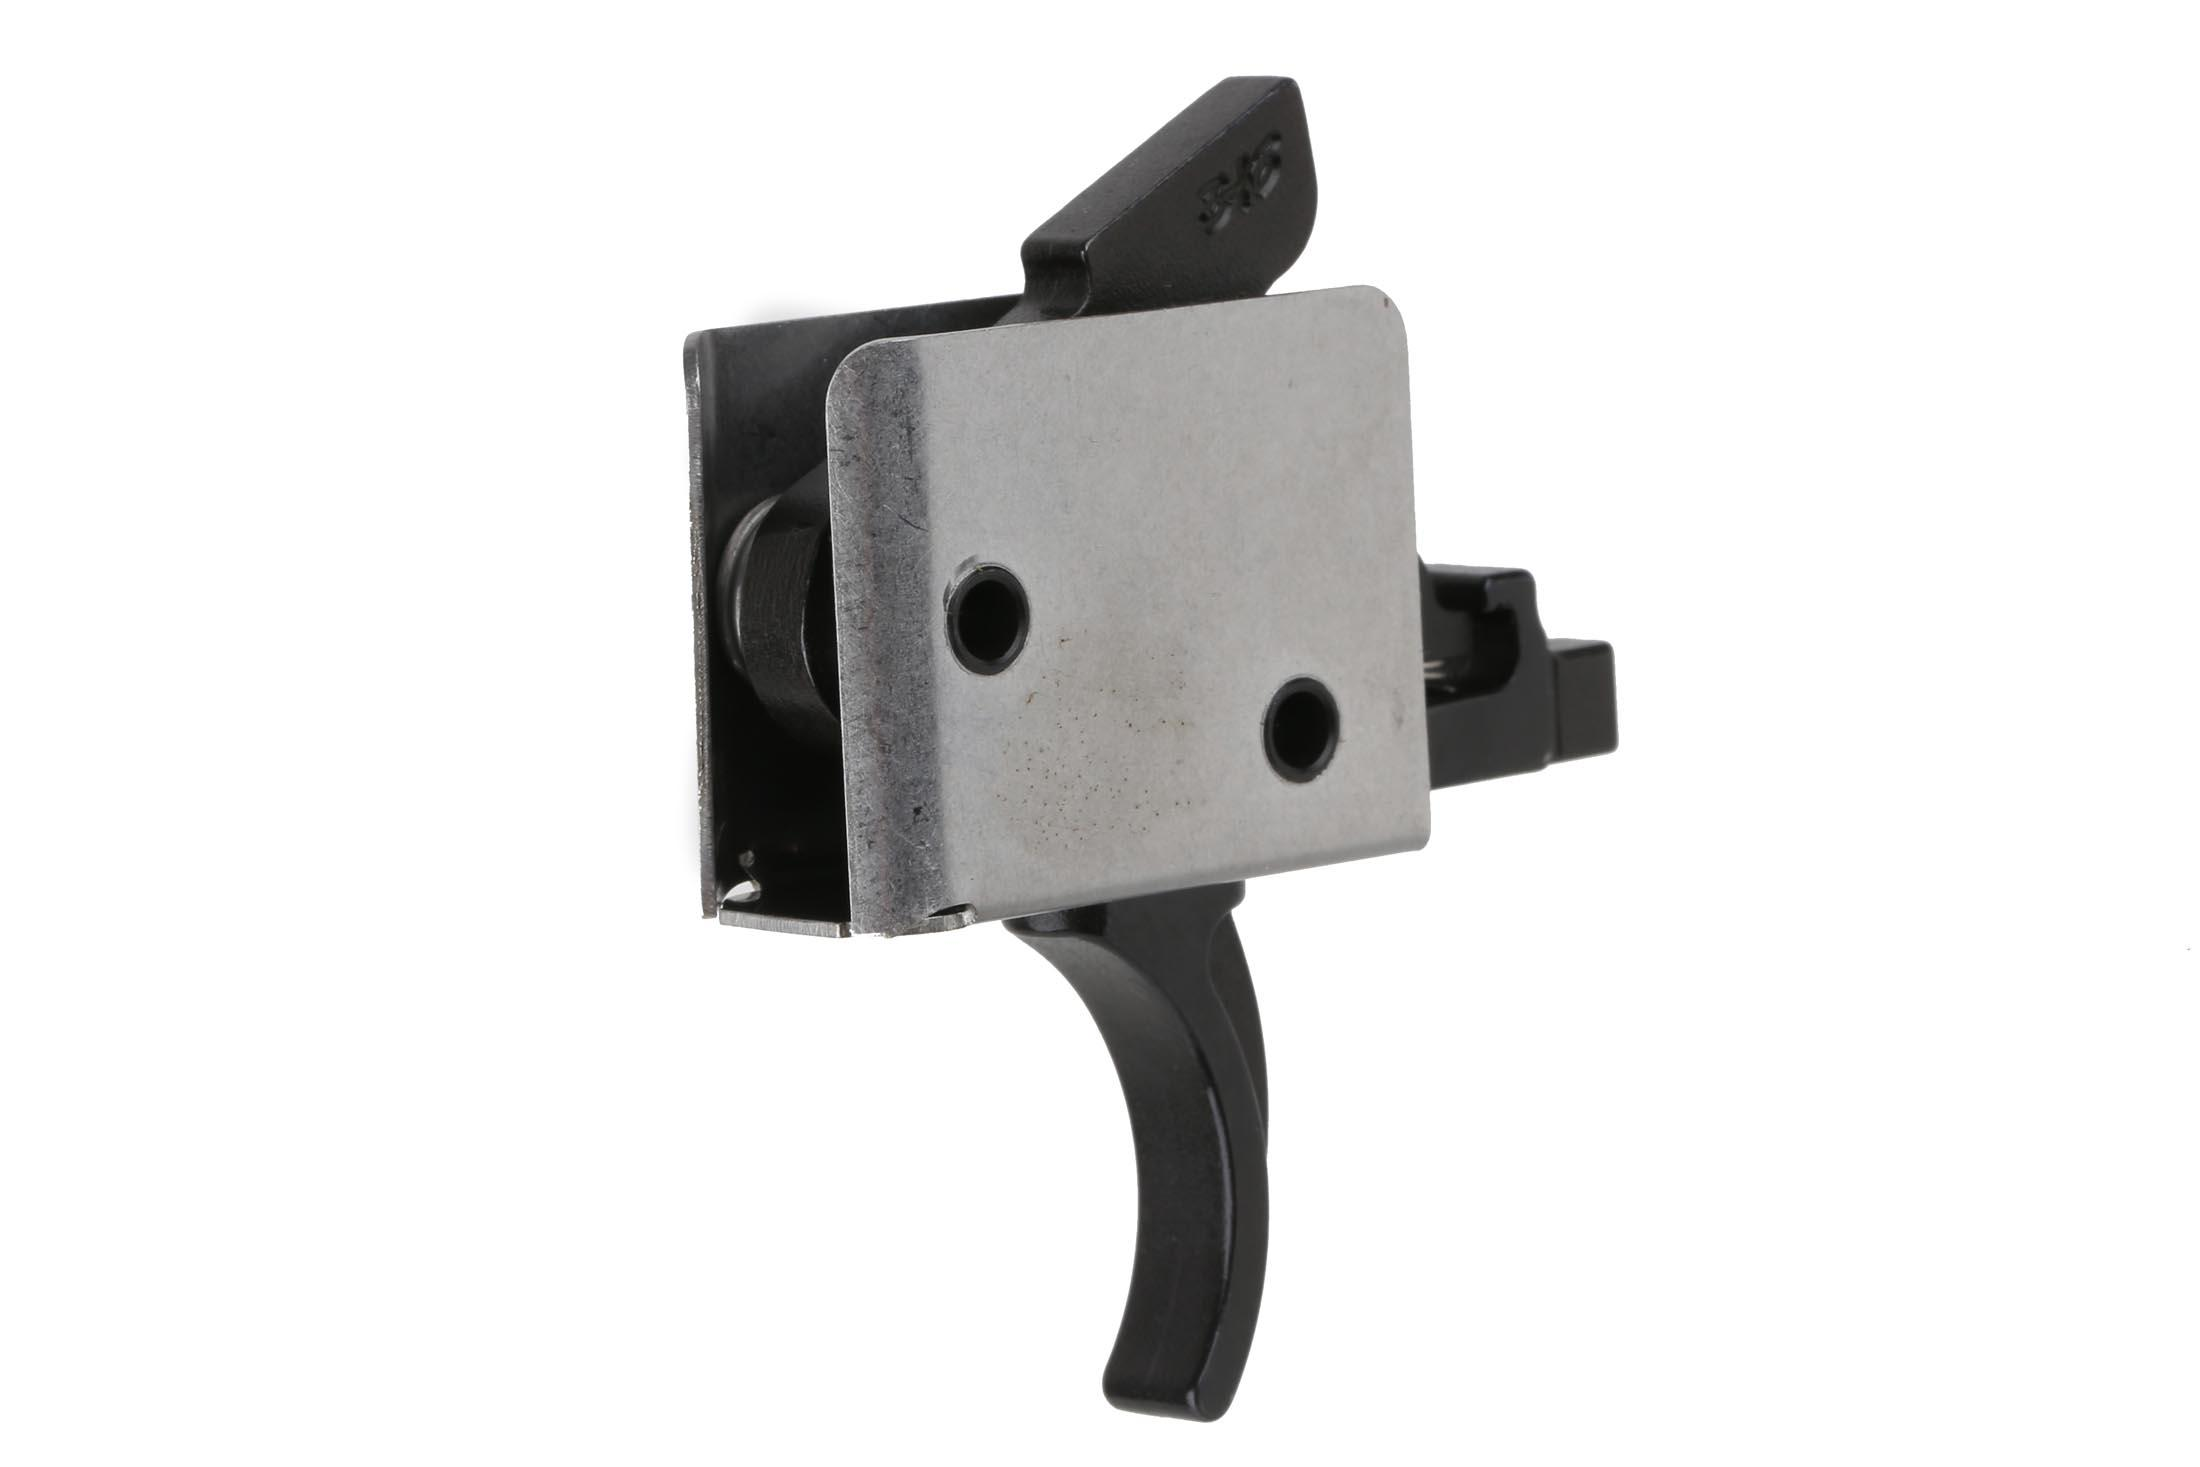 CMC Triggers AR-15 / AR-10 Drop-In Two Stage Trigger - Curved - 2 & 2lb